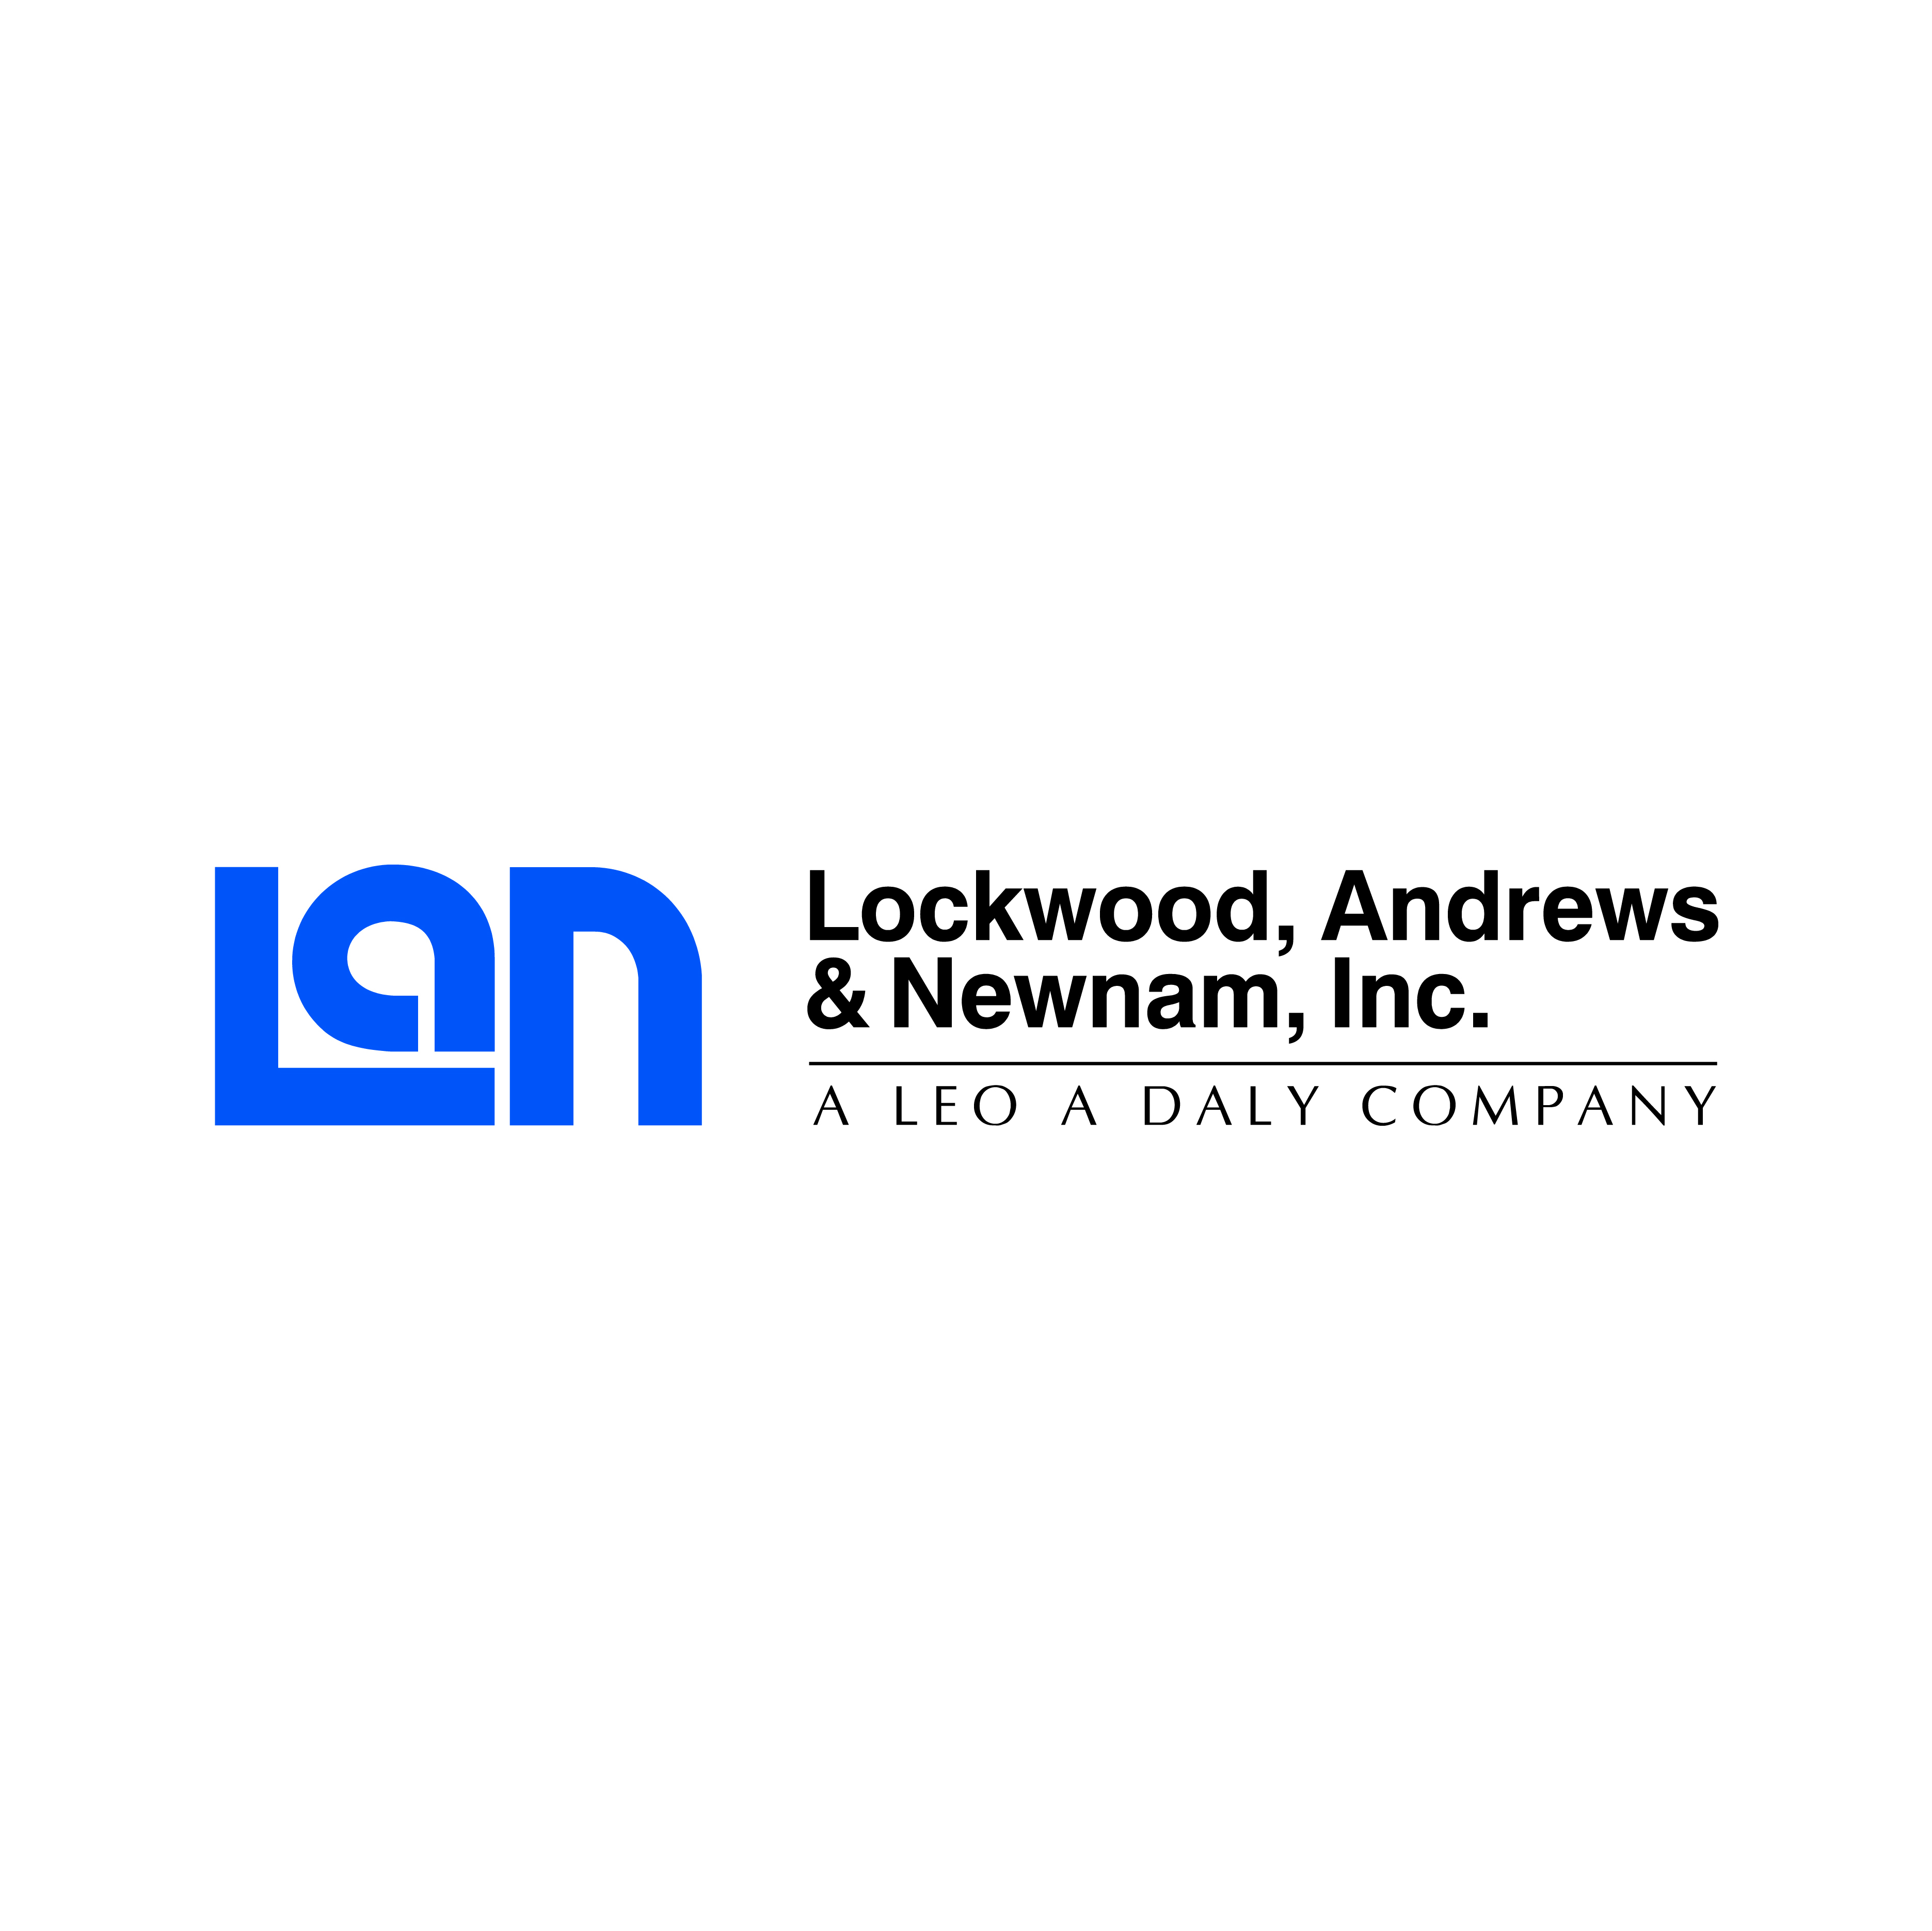 Lockwood, Andrews & Newnam (LAN) Logo copy